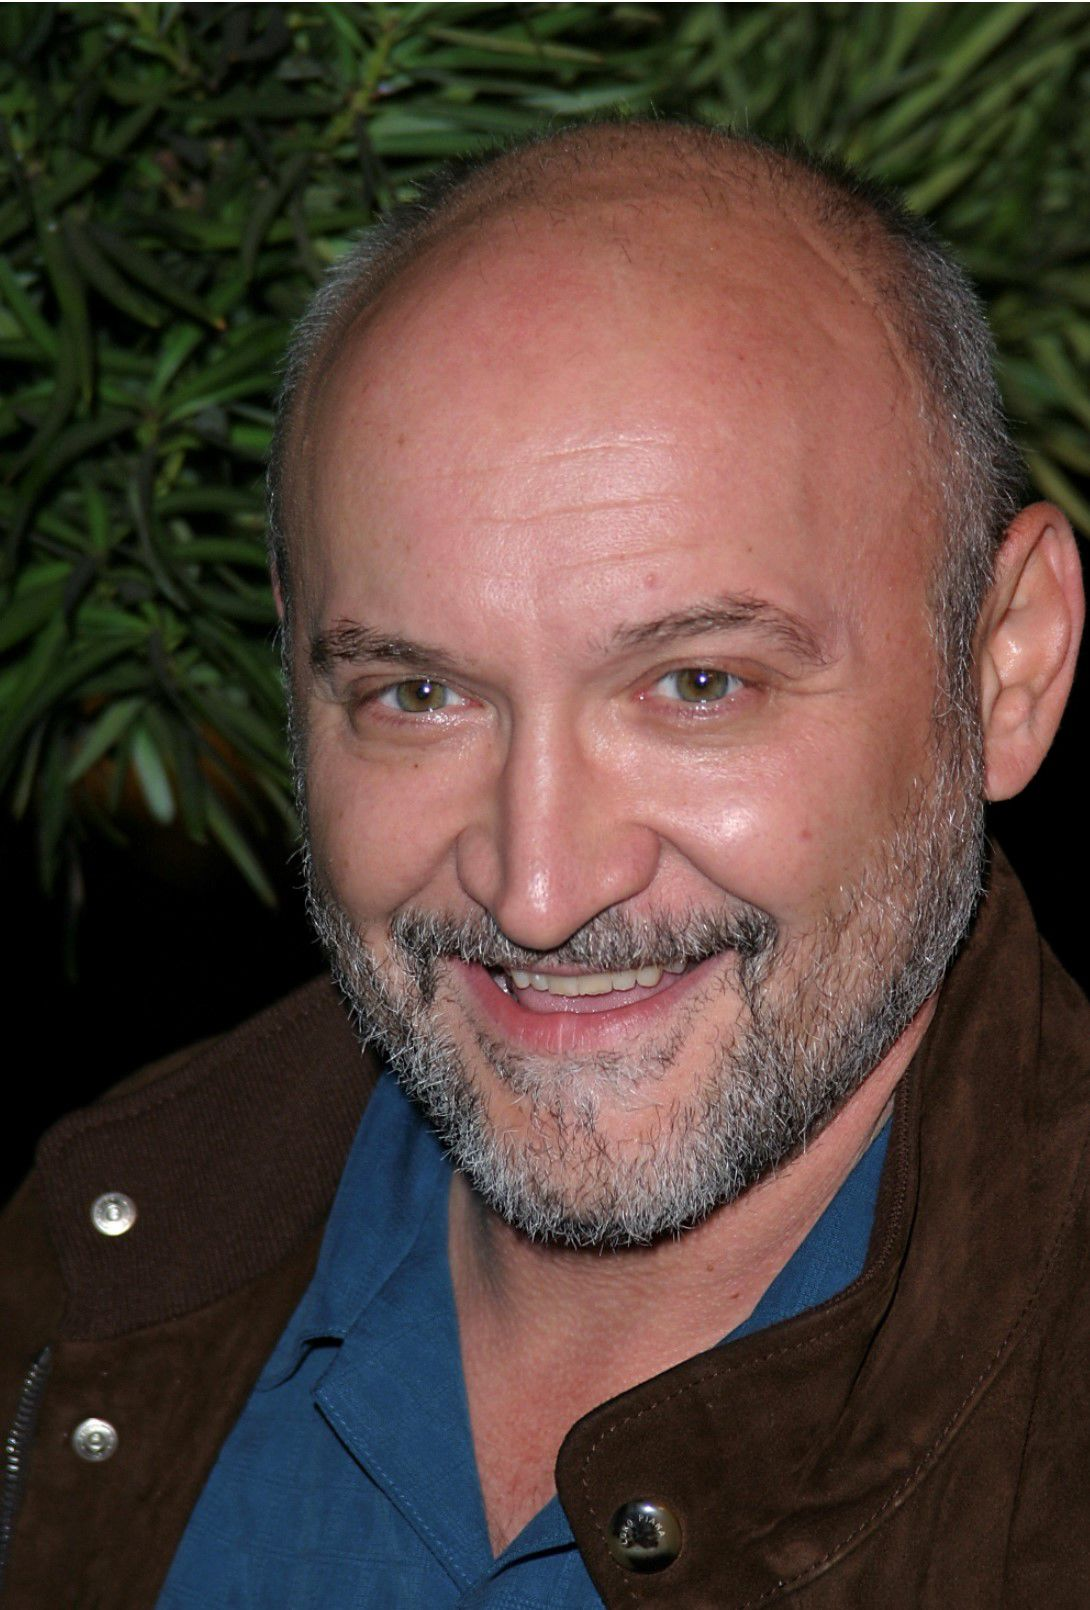 Shawshank director Frank Darabont to attend 25th anniversary festivities